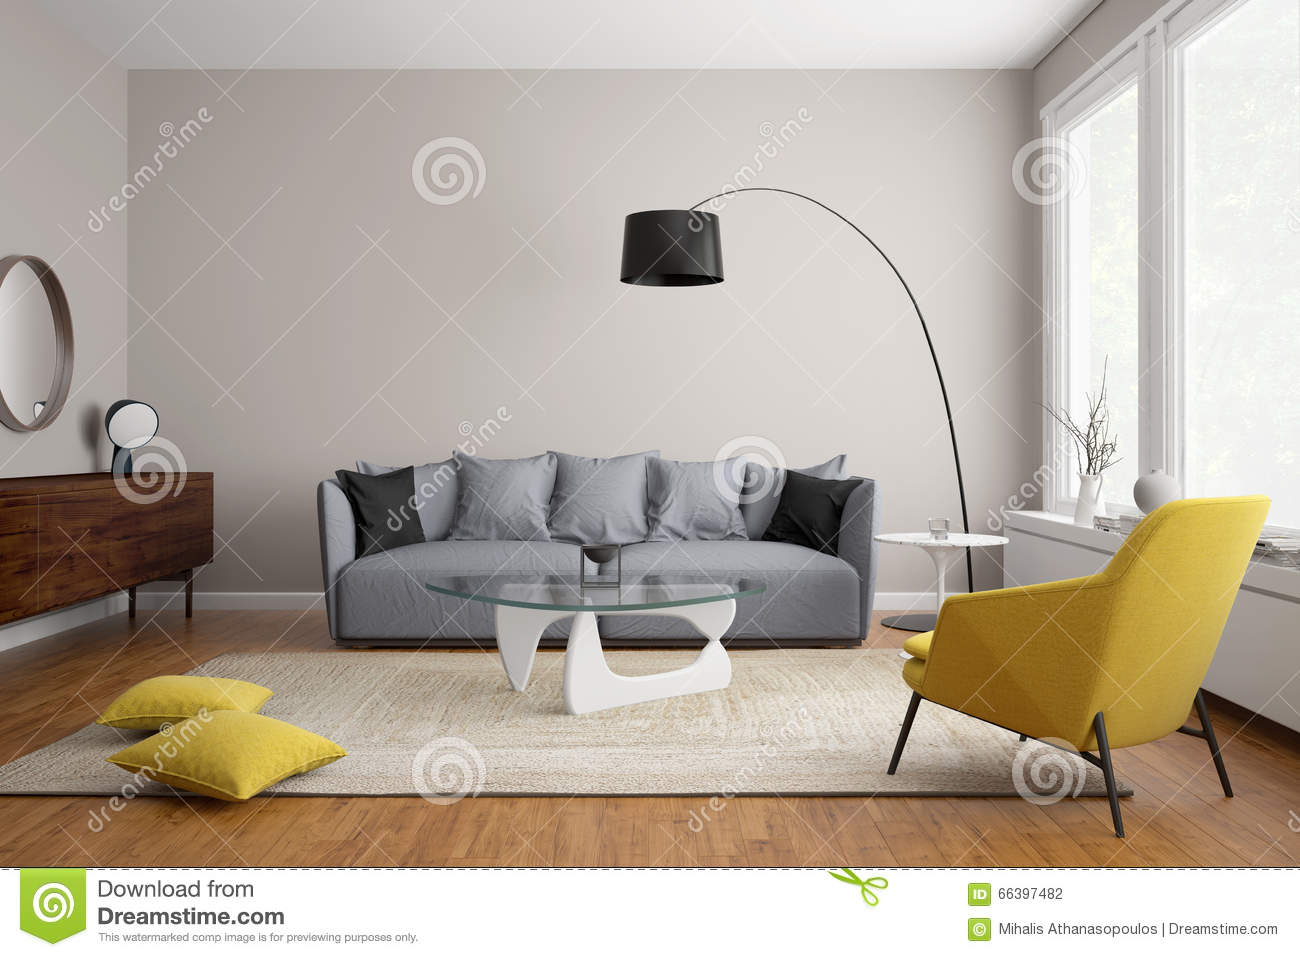 Modern scandinavian living room with grey sofa stock illustration image 66397482 - Deco lounge grijs en beige ...